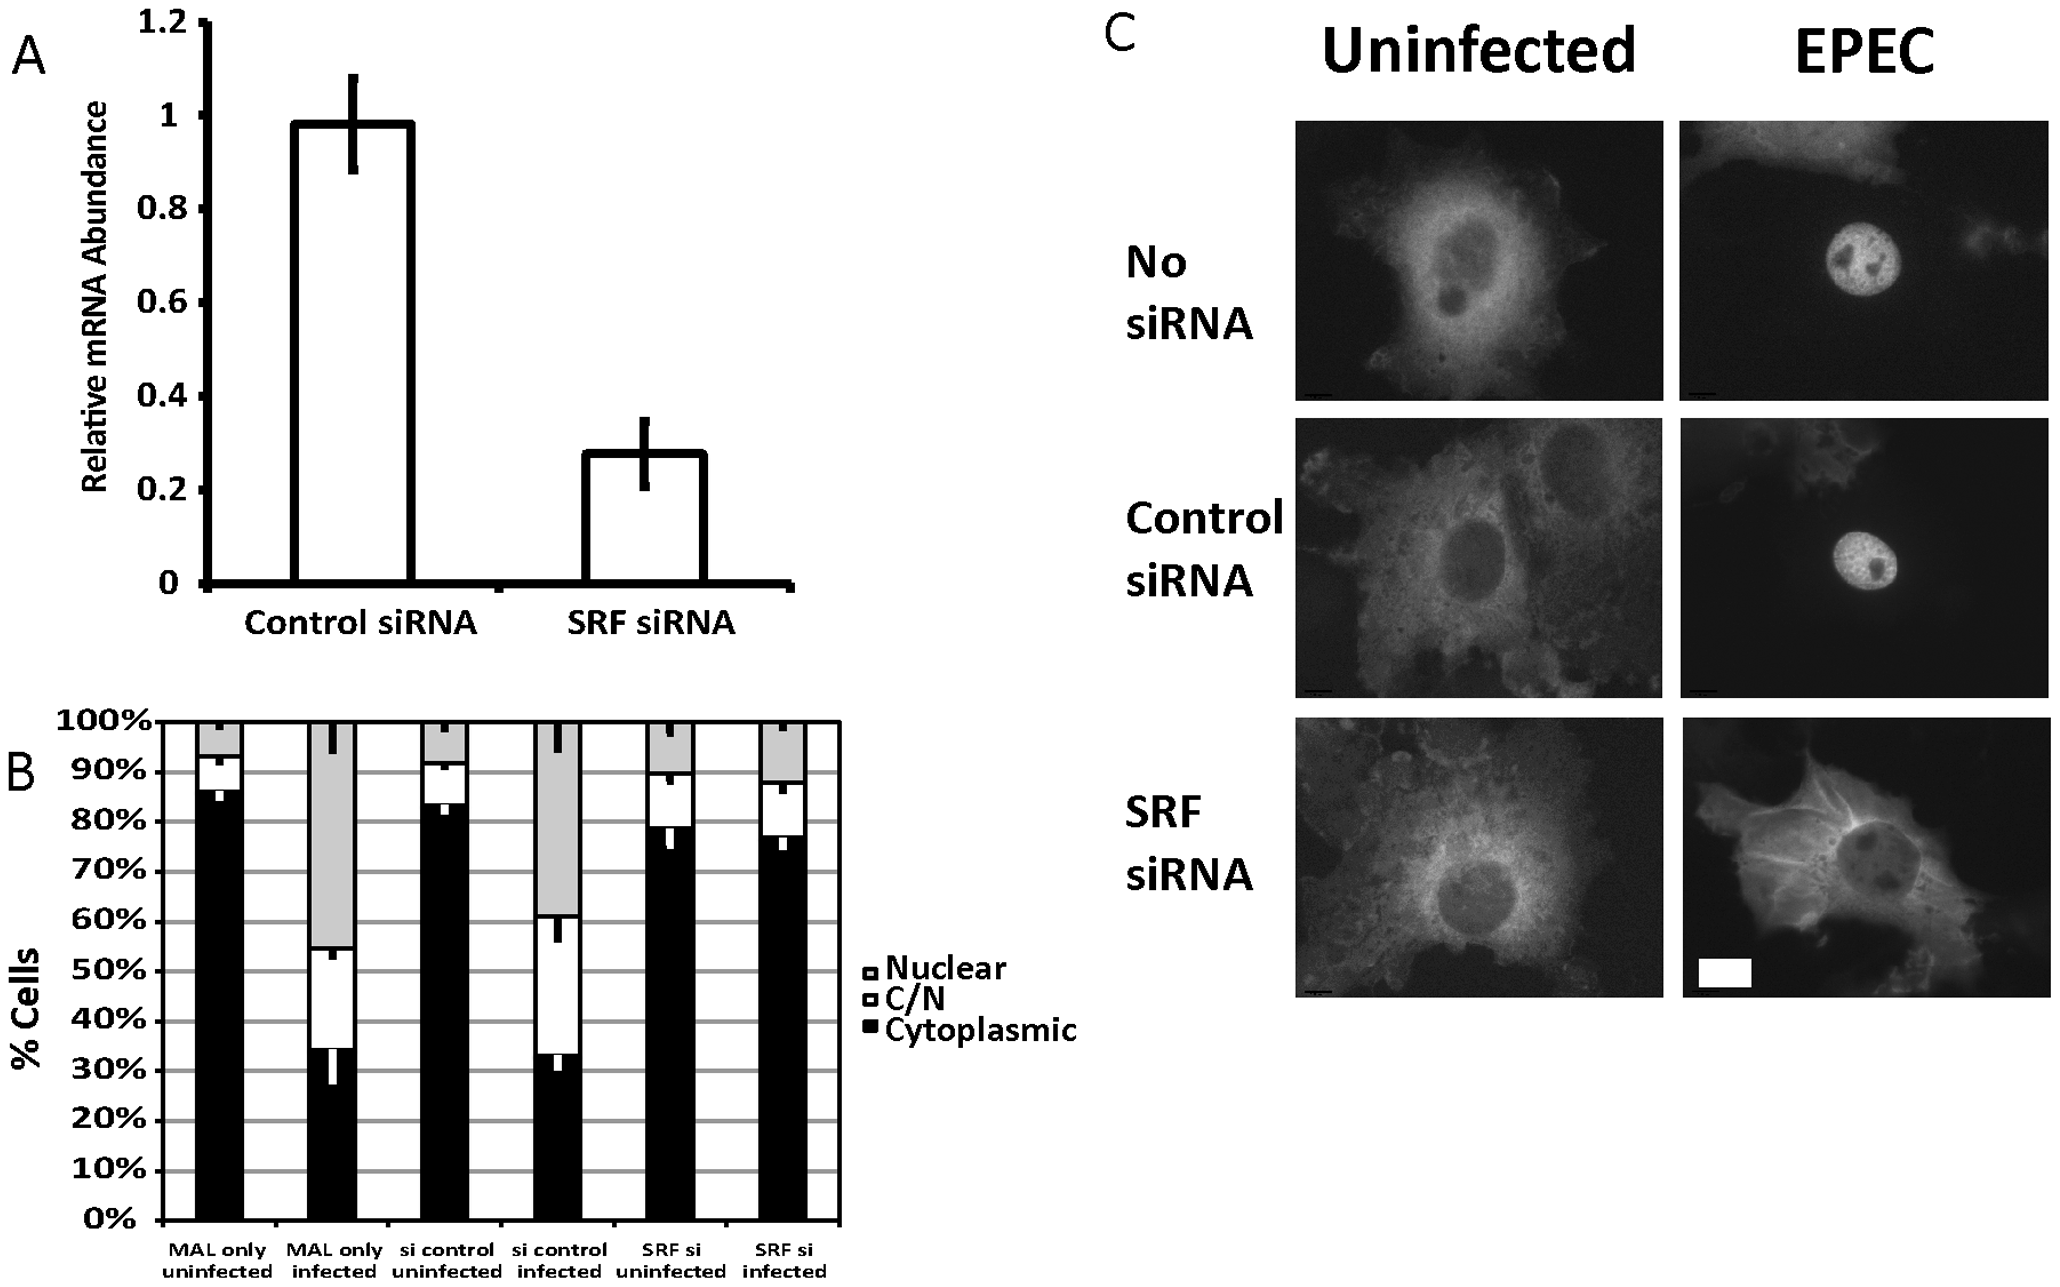 SRF is important for EPEC induced MAL-GFP translocation.